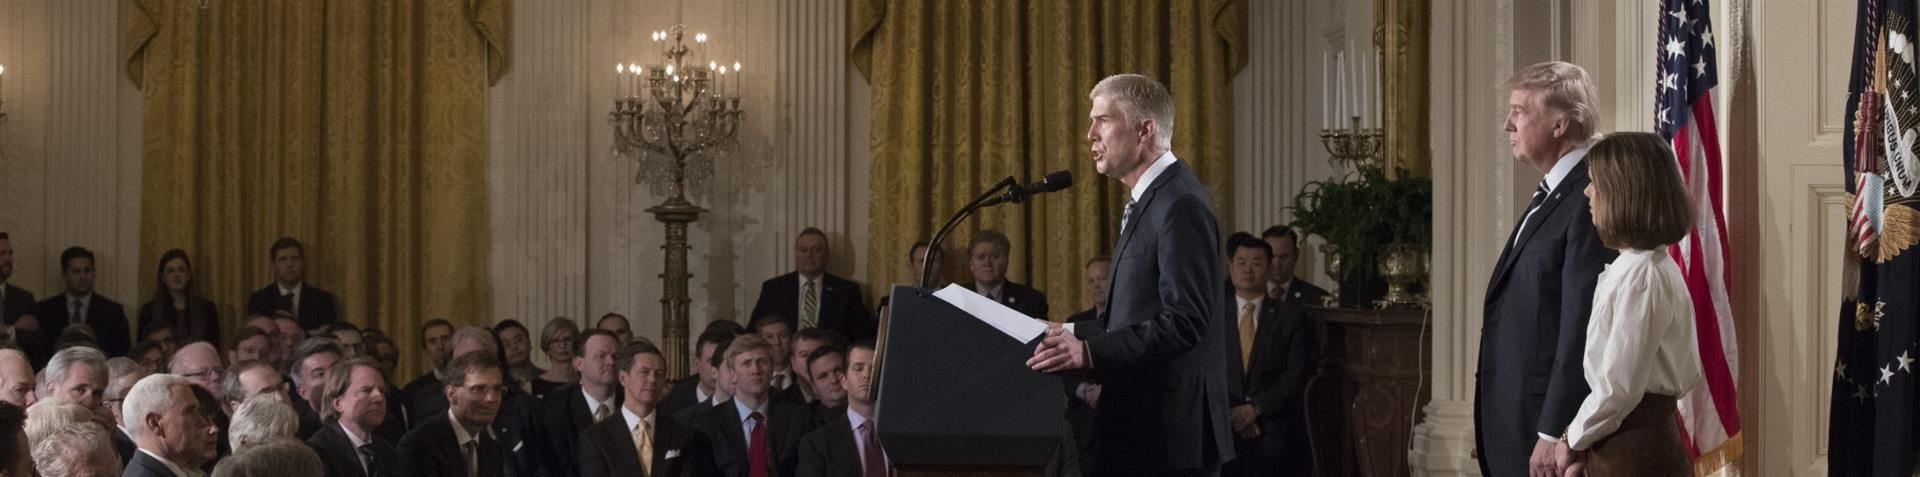 Supreme Court nominee Neil Gorsuch addresses a pale crowd Tuesday as President Trump introduces him. (Credit: Al Jazeera)